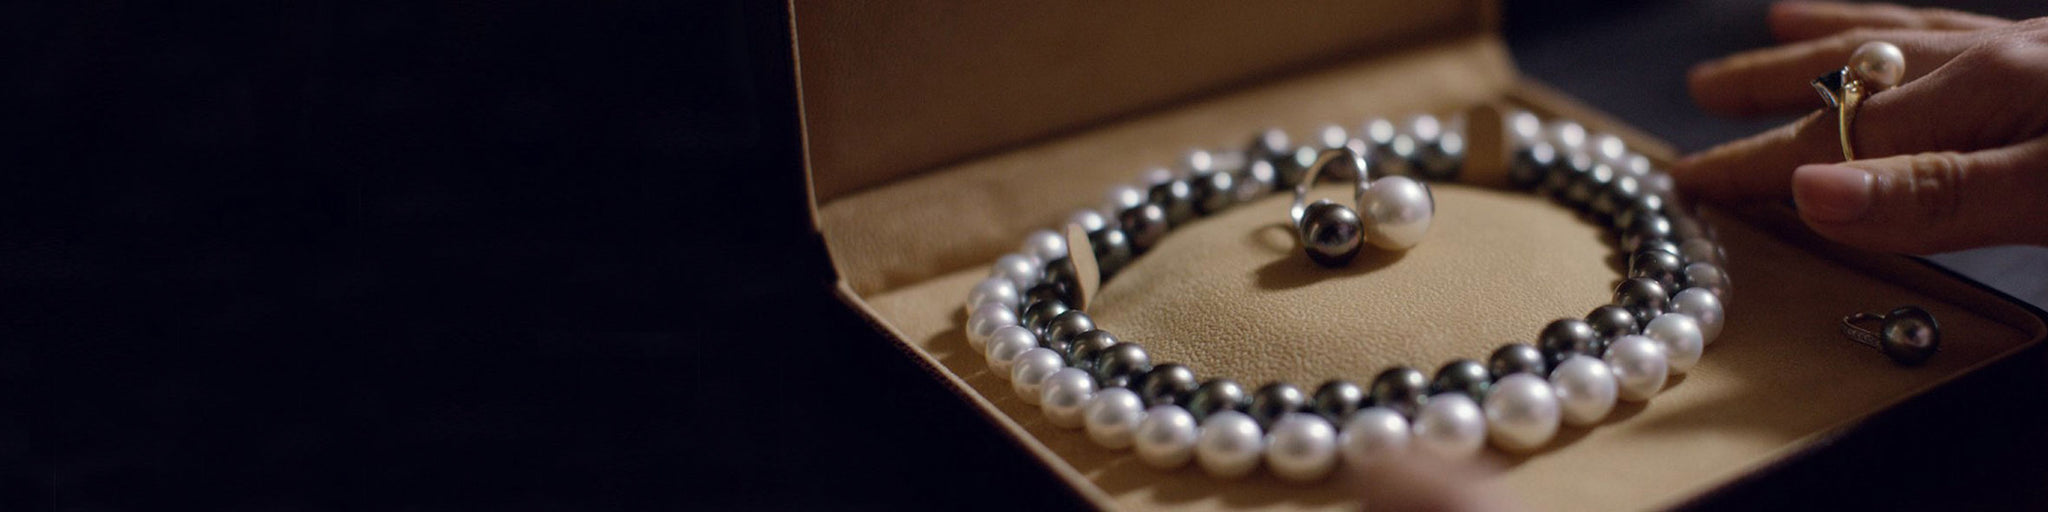 Buy pearl necklaces online UK